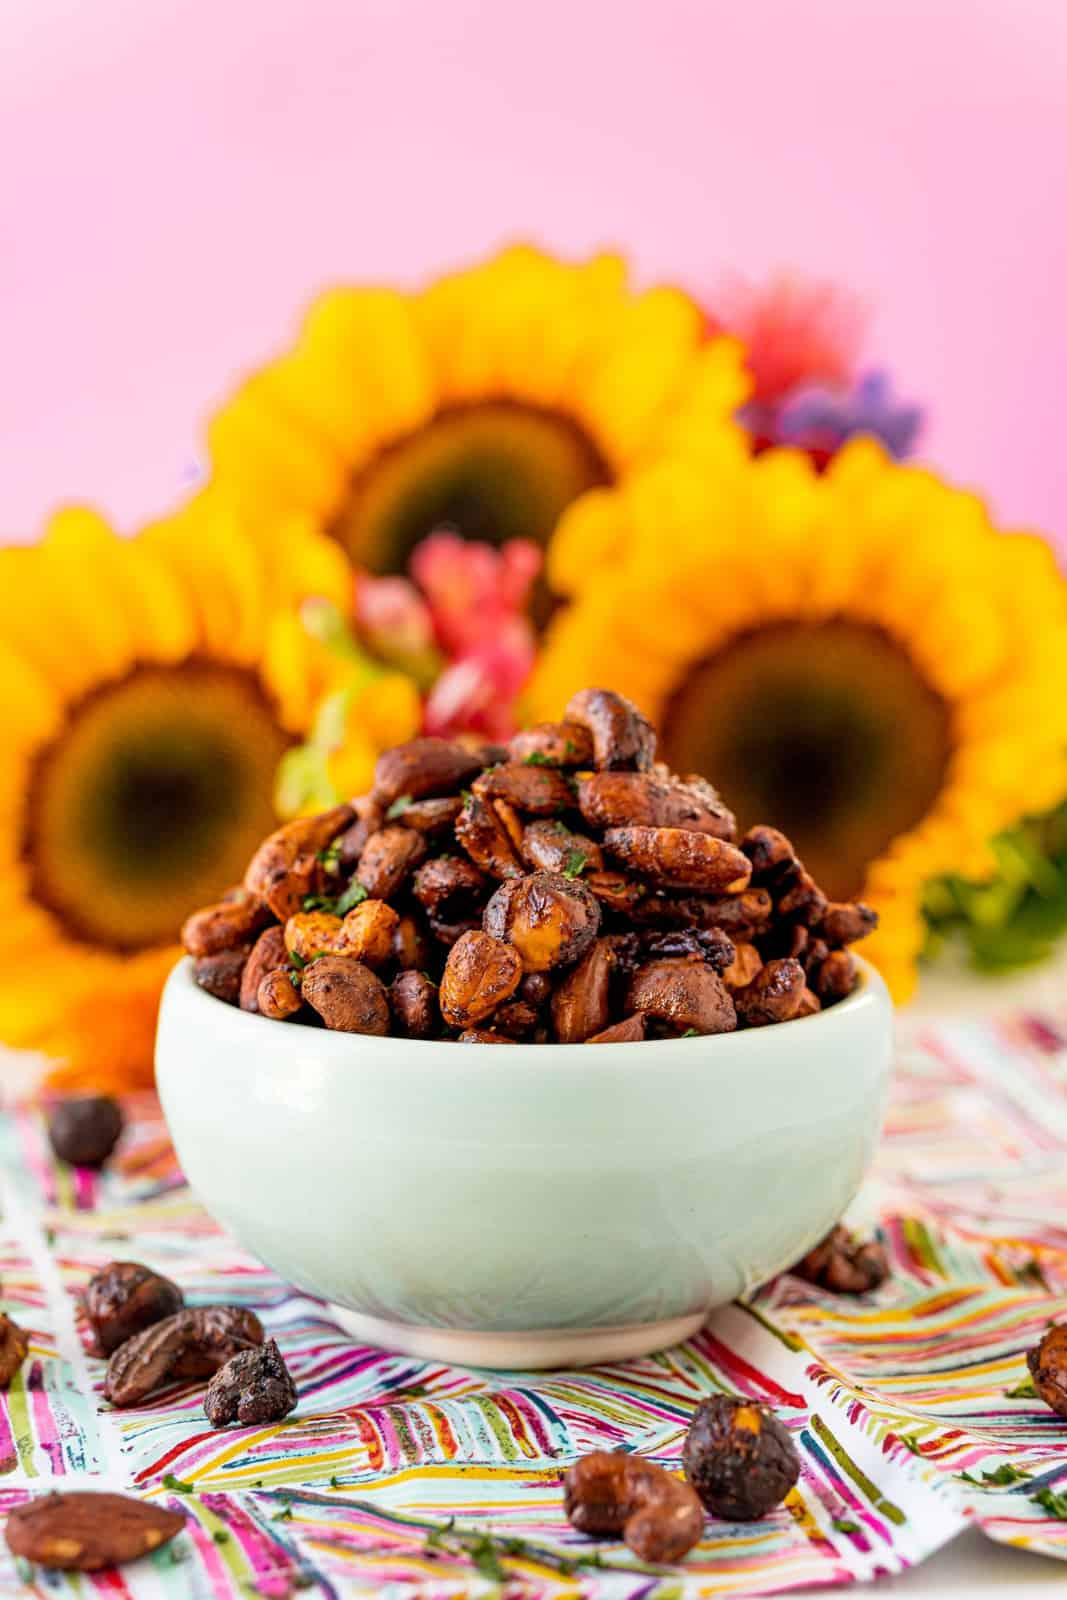 Bowl of Sweet and Spicy Roasted Nuts in front of flowers